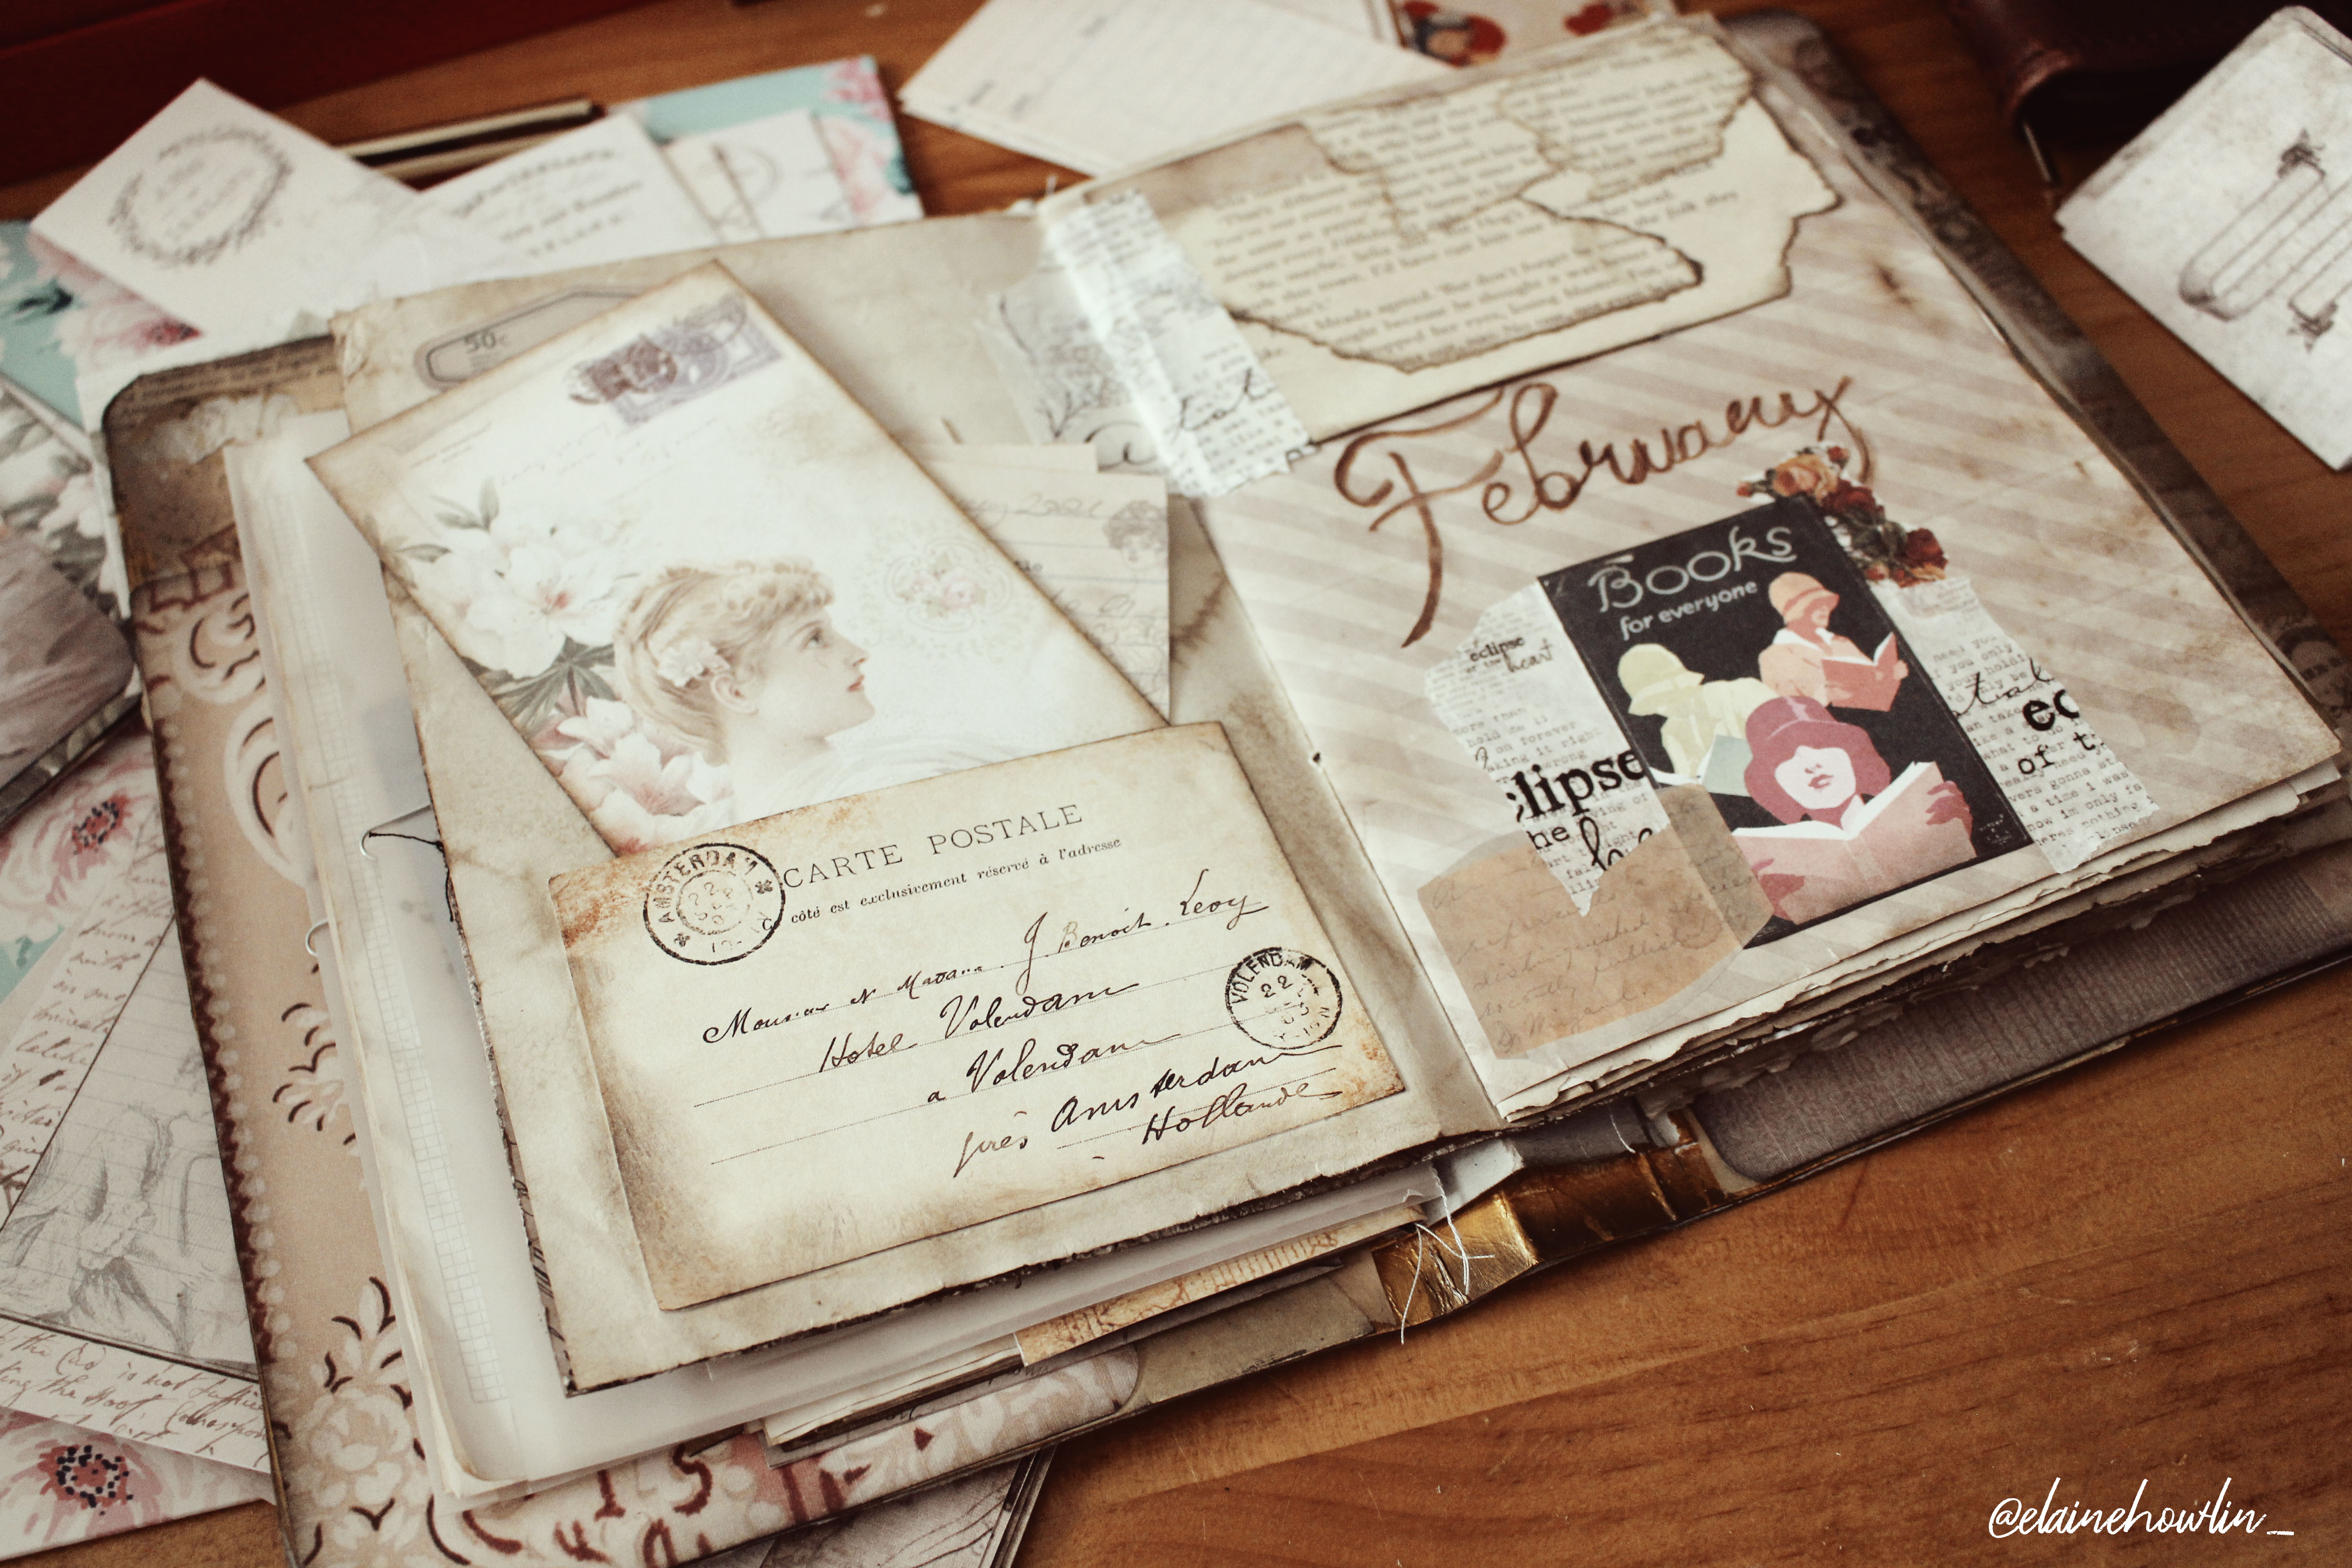 February wrap up reading journal with me Elaine Howlin